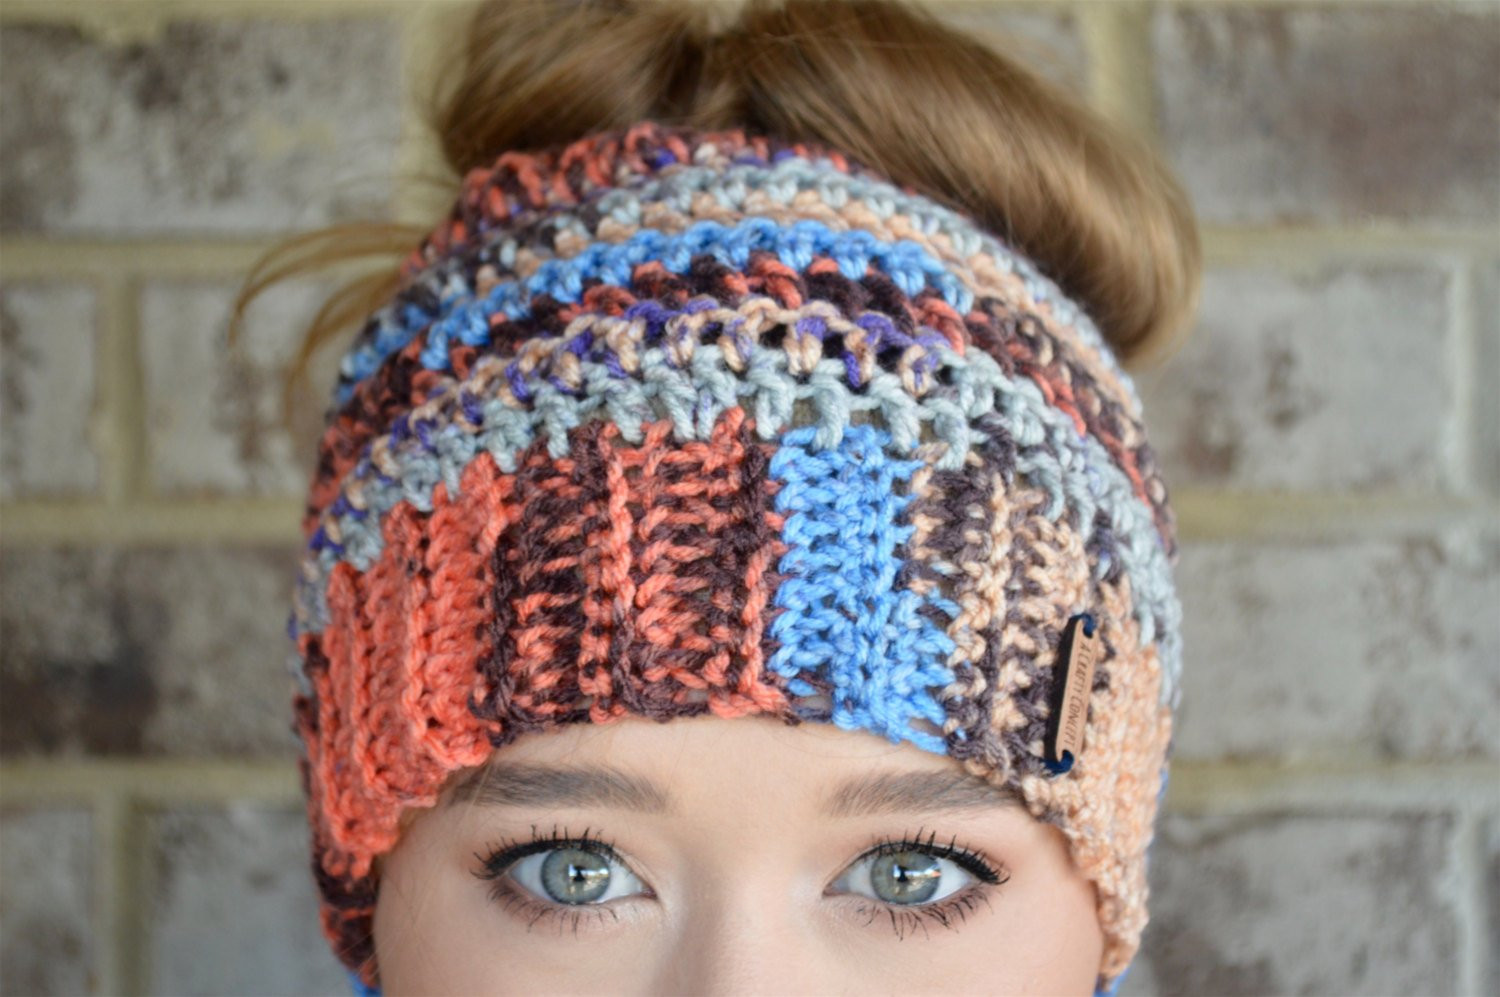 Crochet Messy Bun Beanie Lovely Crochet Messy Bun Beanie Messy Bun Hat Messy Bun Beanie Of New 43 Photos Crochet Messy Bun Beanie